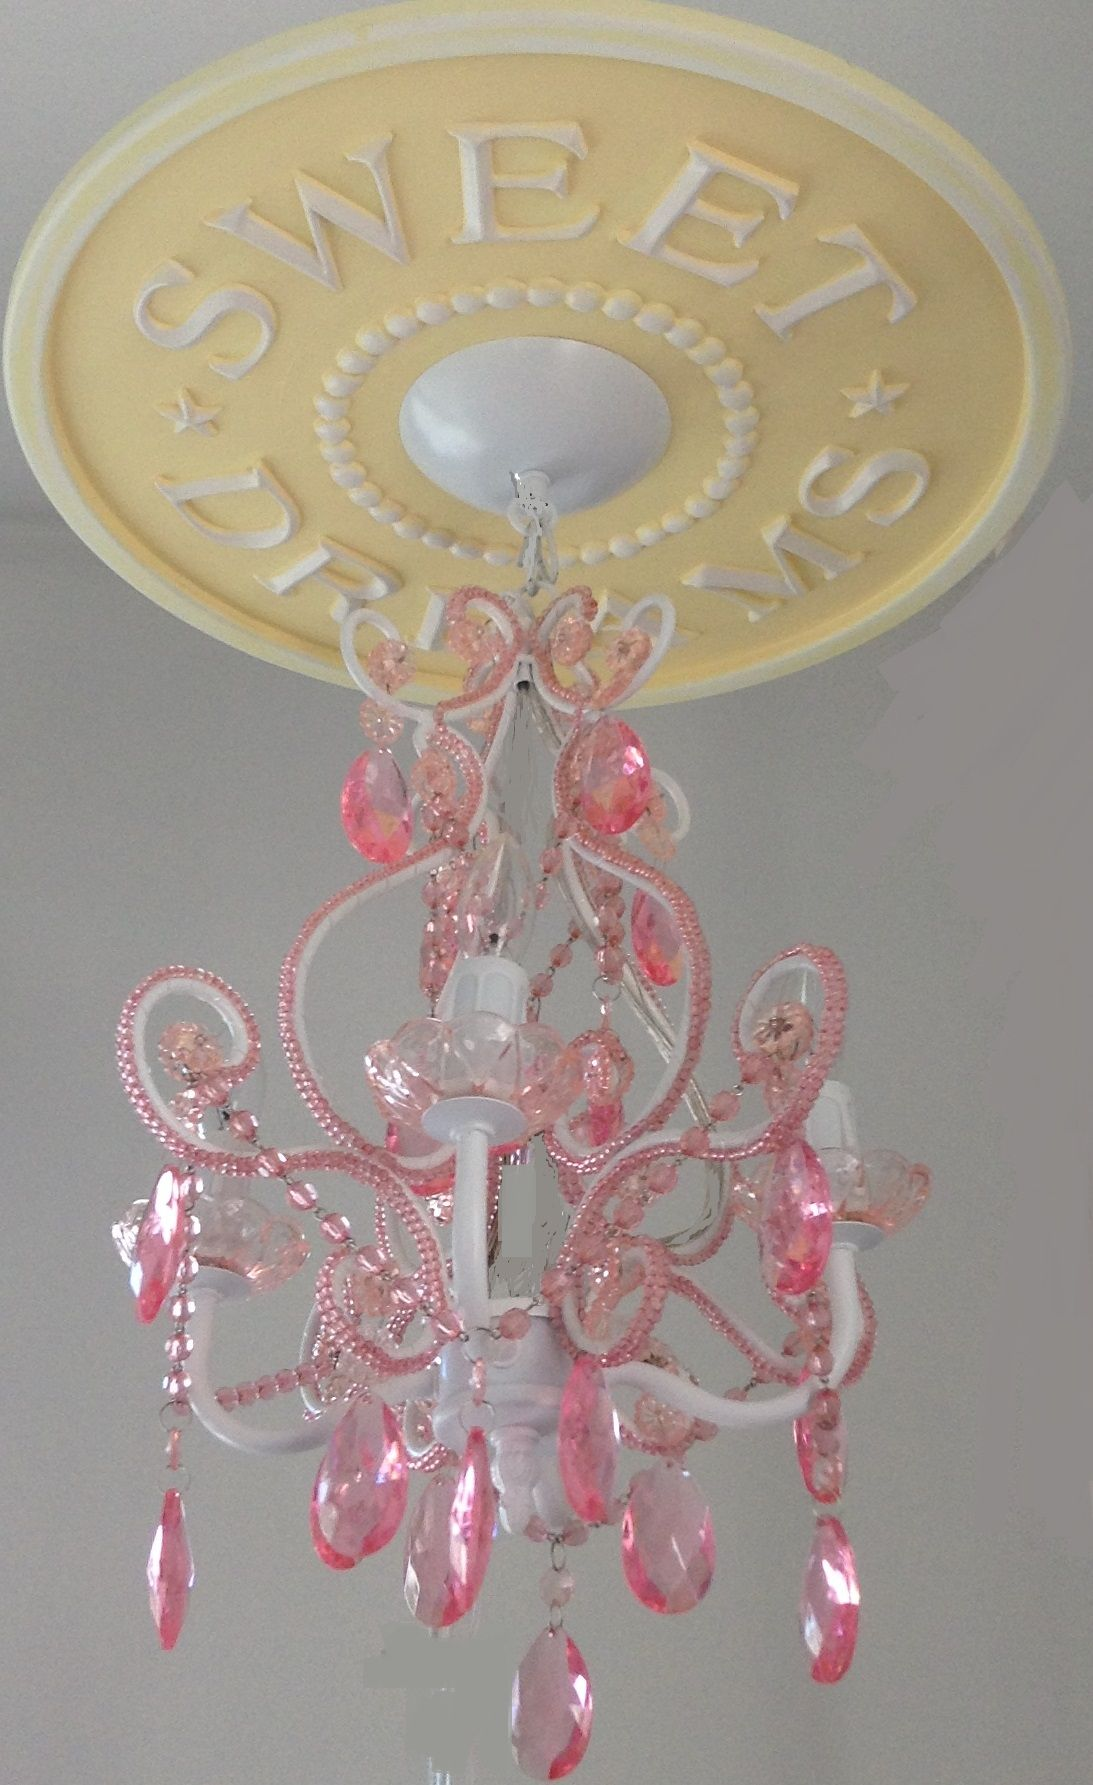 Sweet Dreams Ceiling Medallion in yellow distressed by Marie Ricci